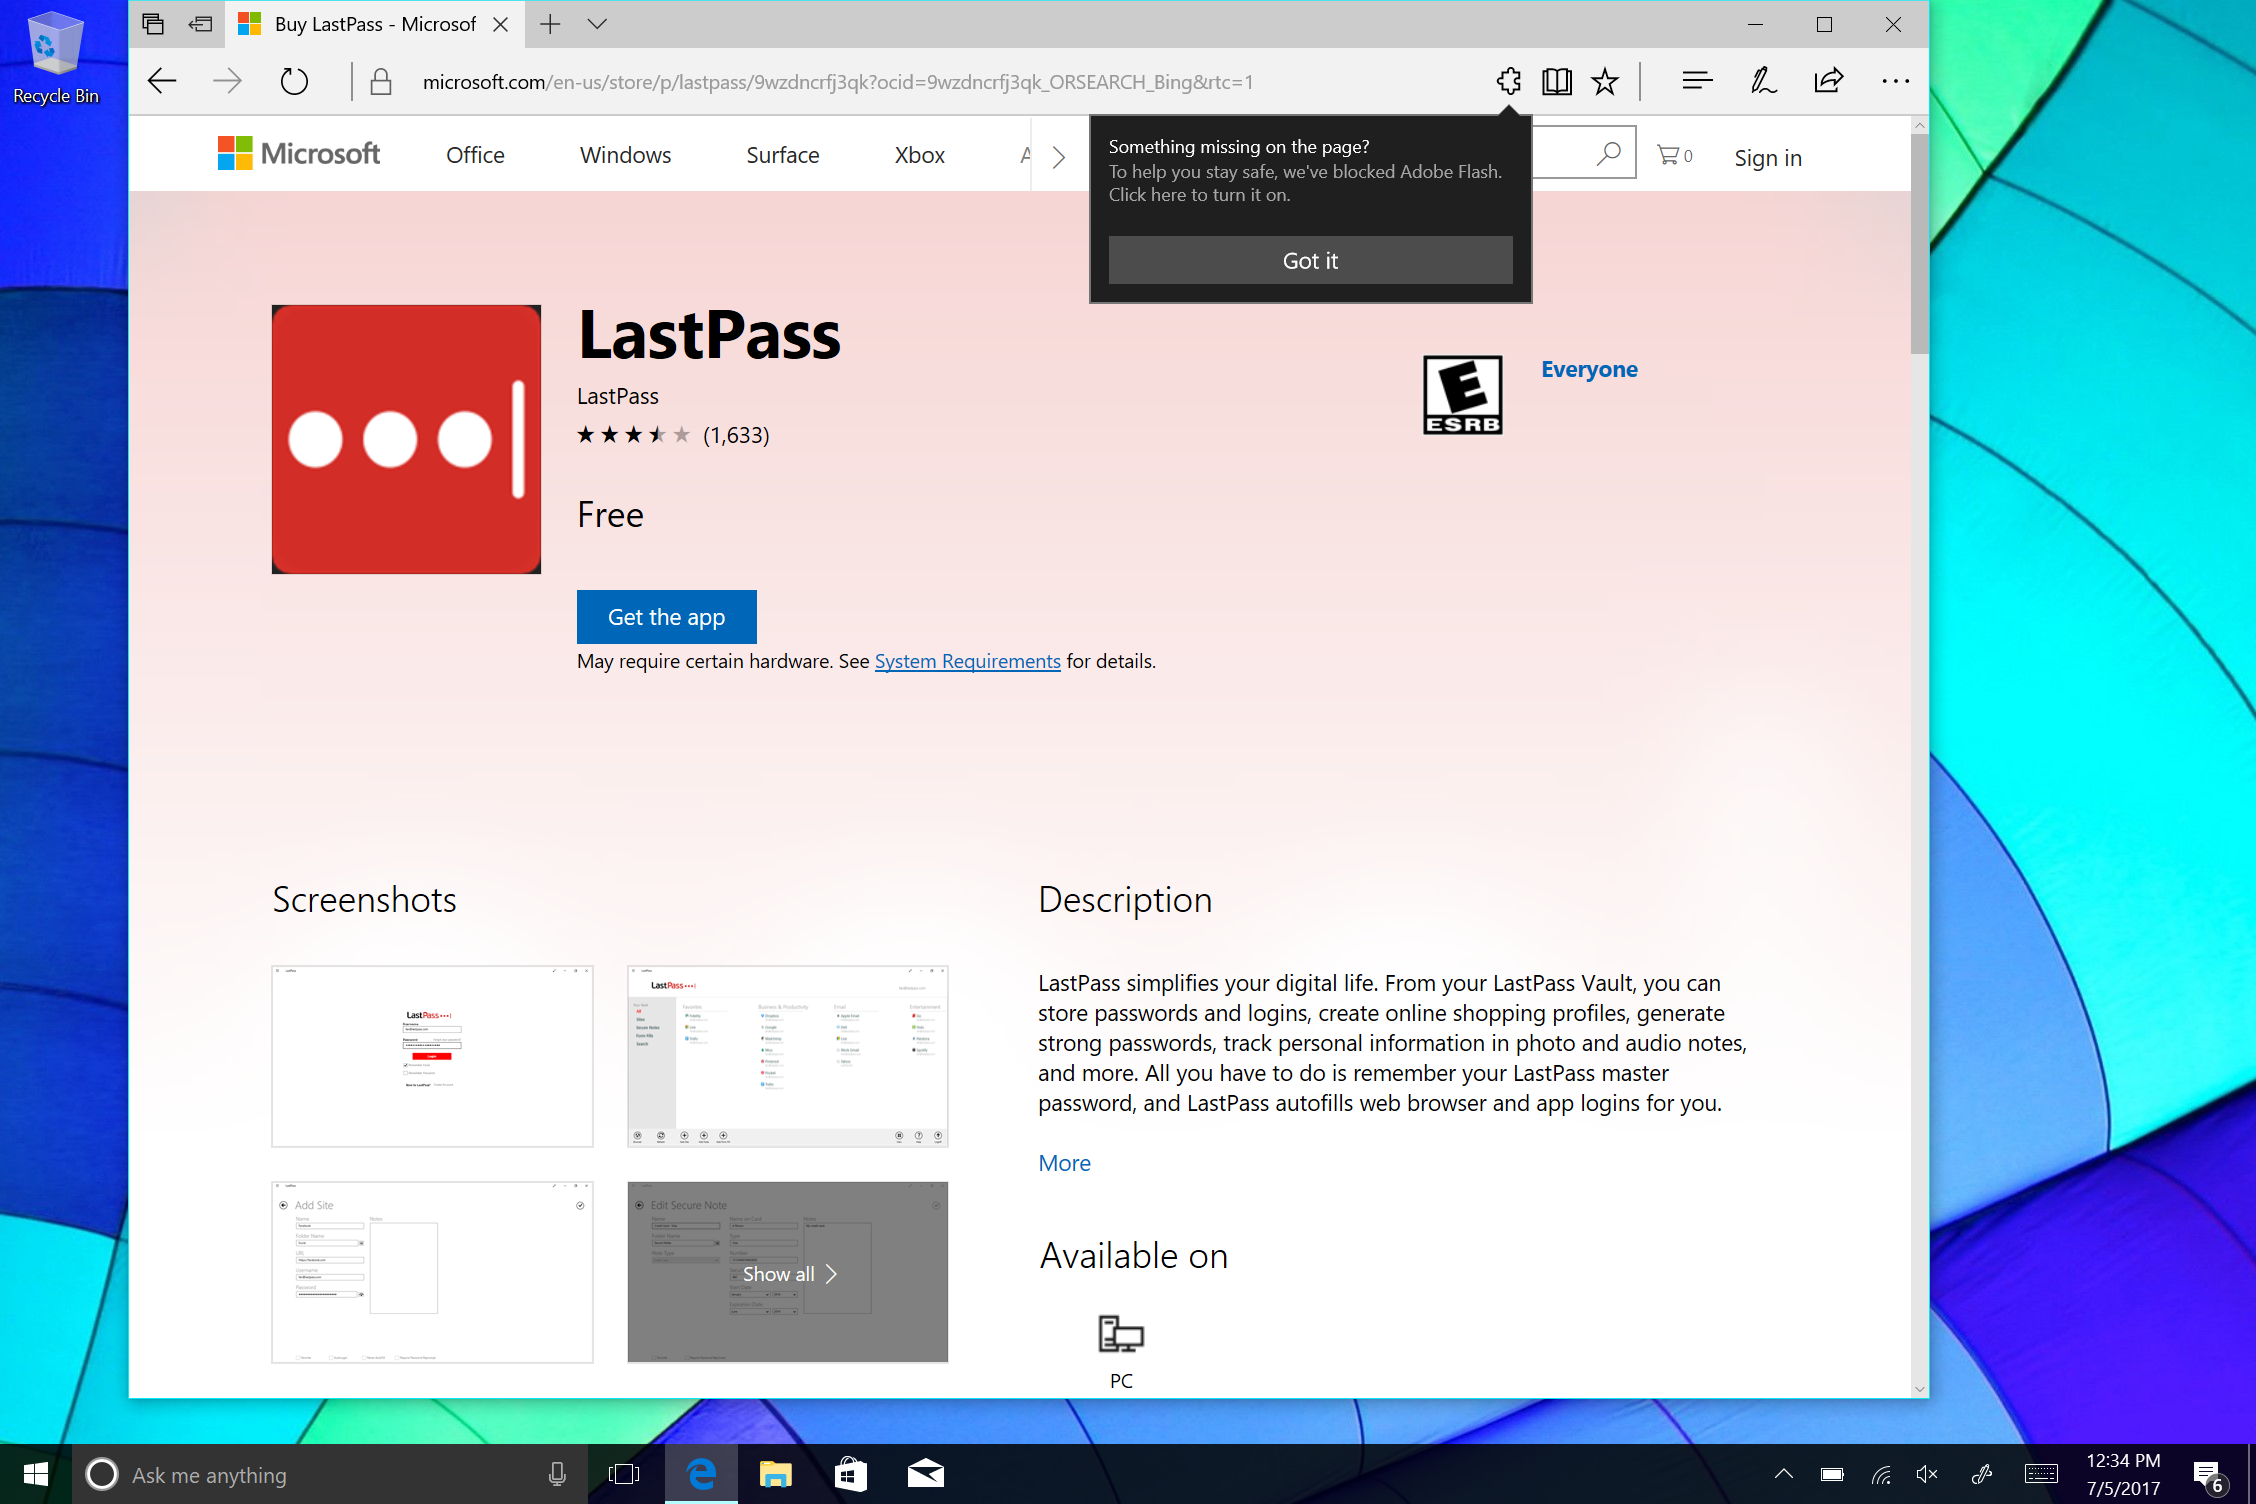 Windows 10 store does not work -  But Using A Password Management Service Like Lastpass Which Functions Cross Platform And Is Available Through The Windows 10 Store Will